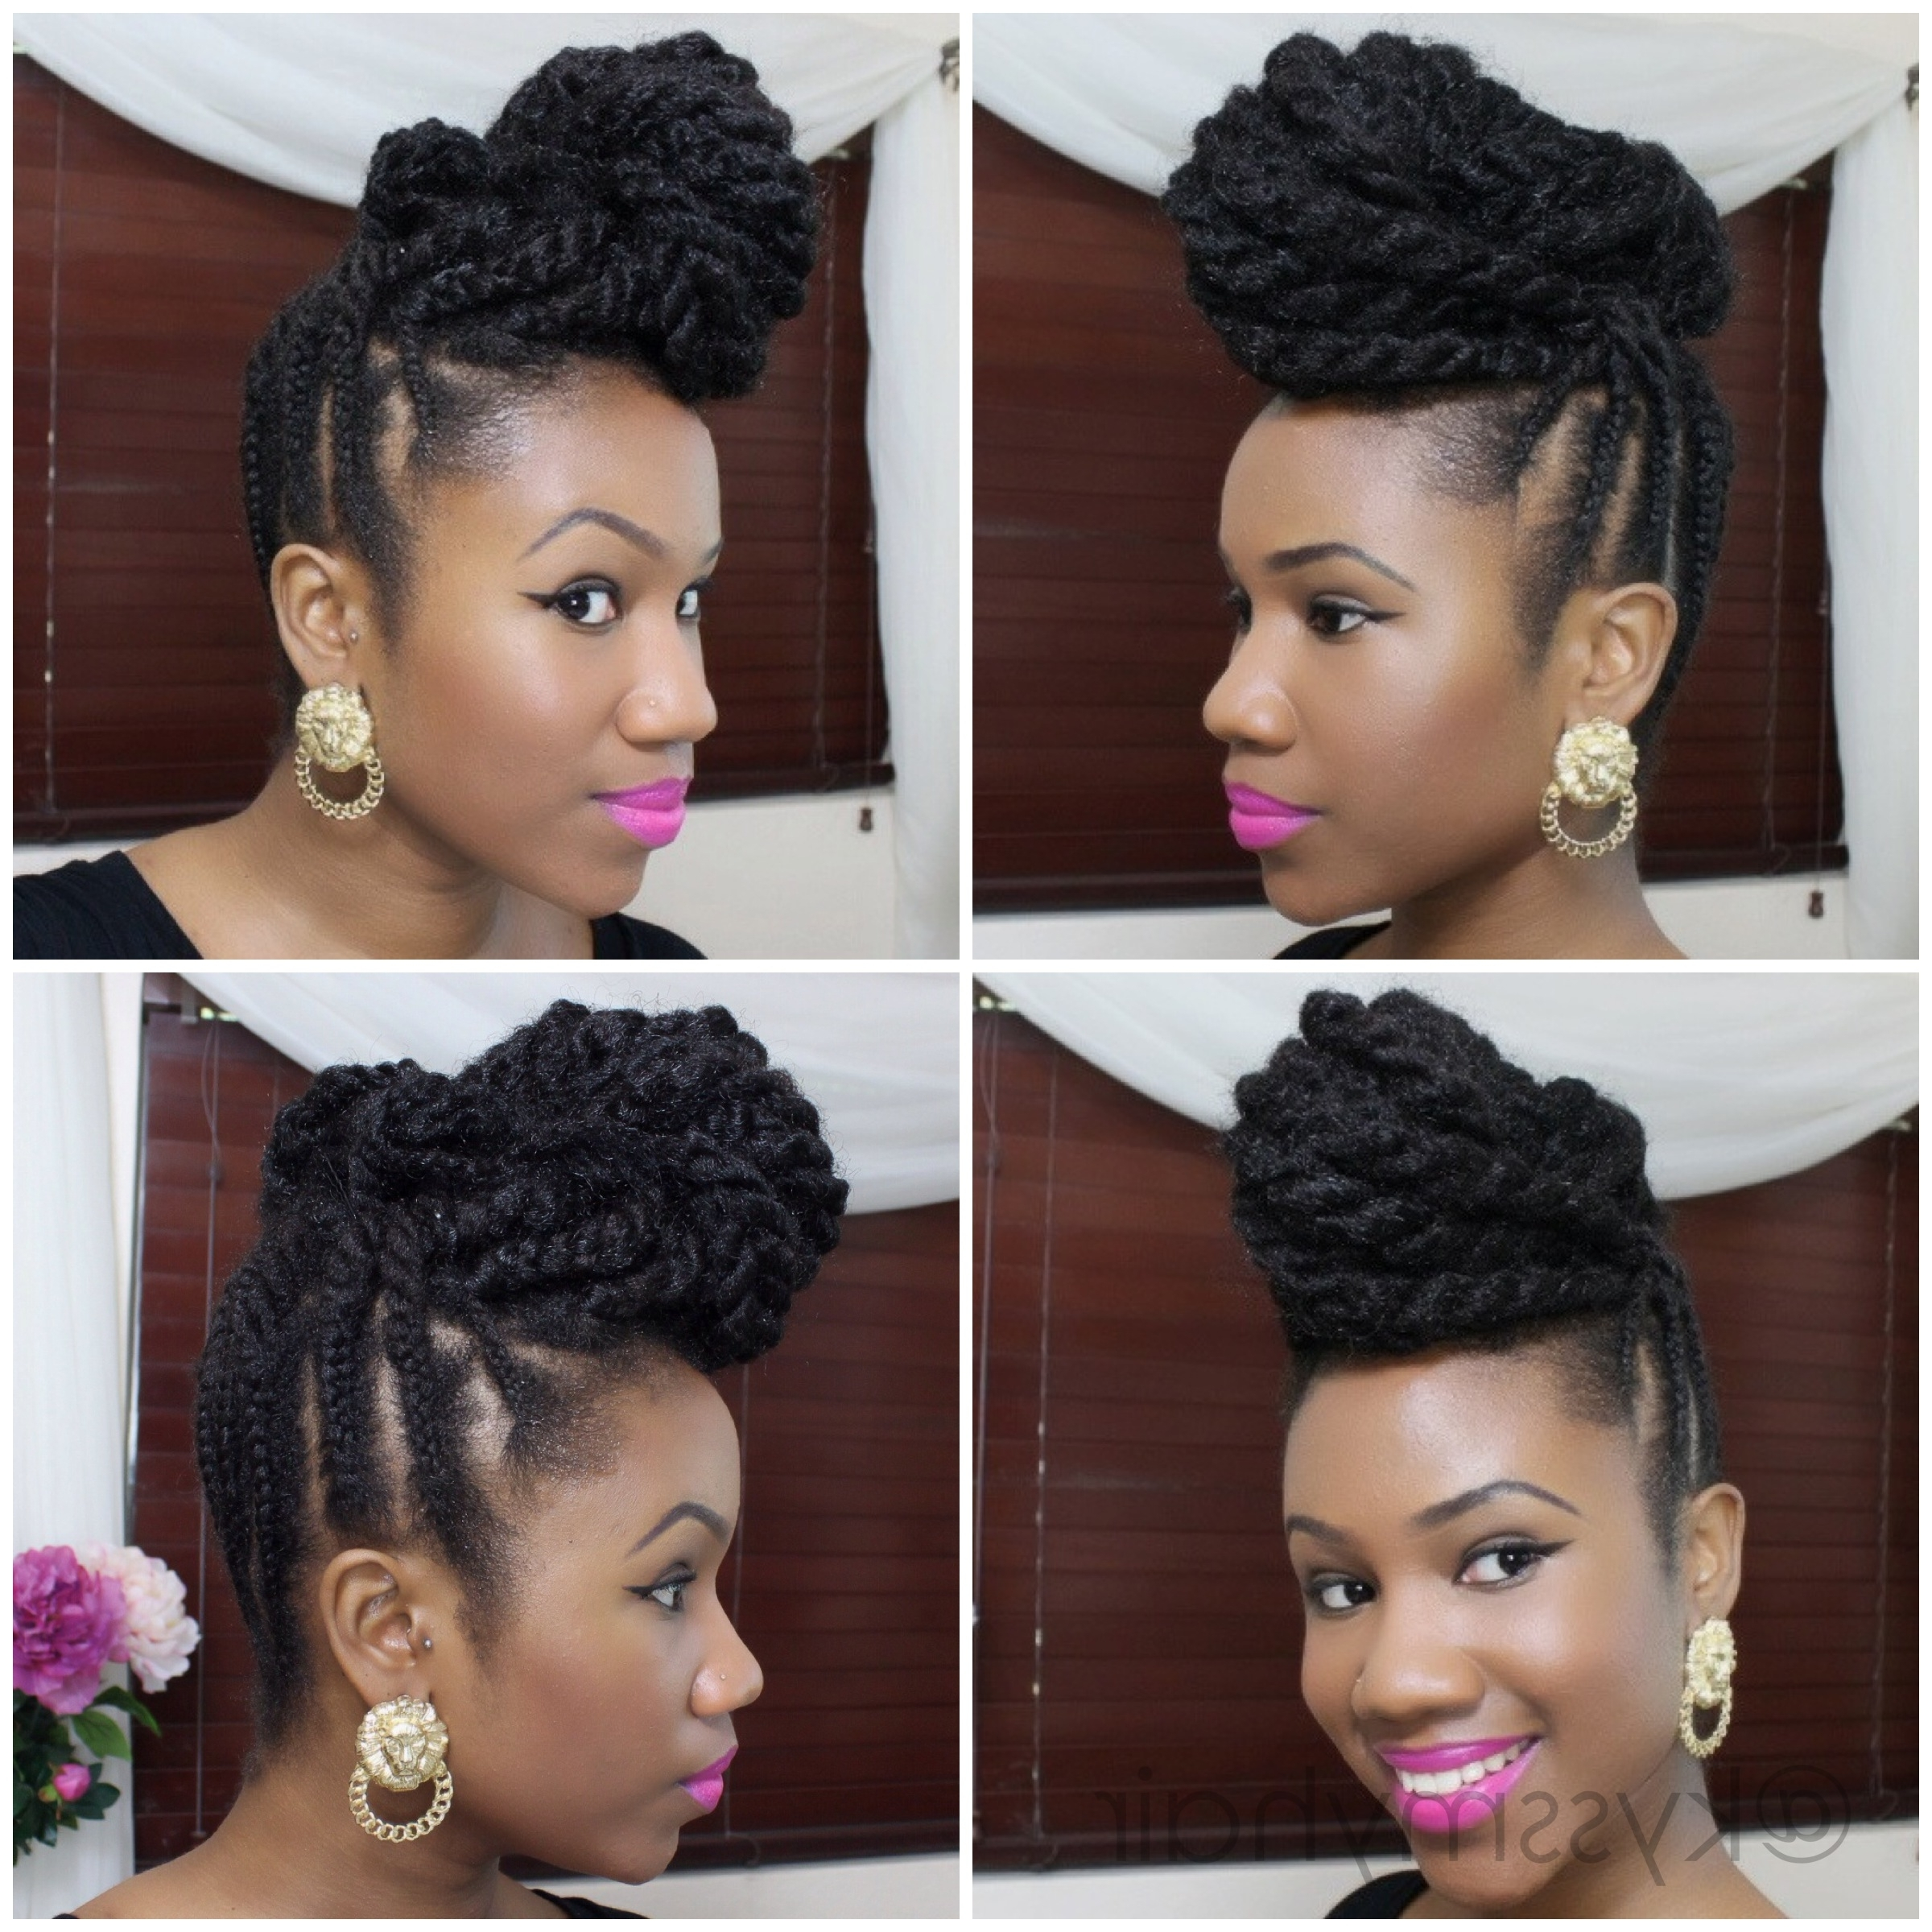 Braided Updo On Natural Hair Using Marley Hair | Kyss My Hair | Kyss Within Natural Black Updo Hairstyles (View 12 of 15)